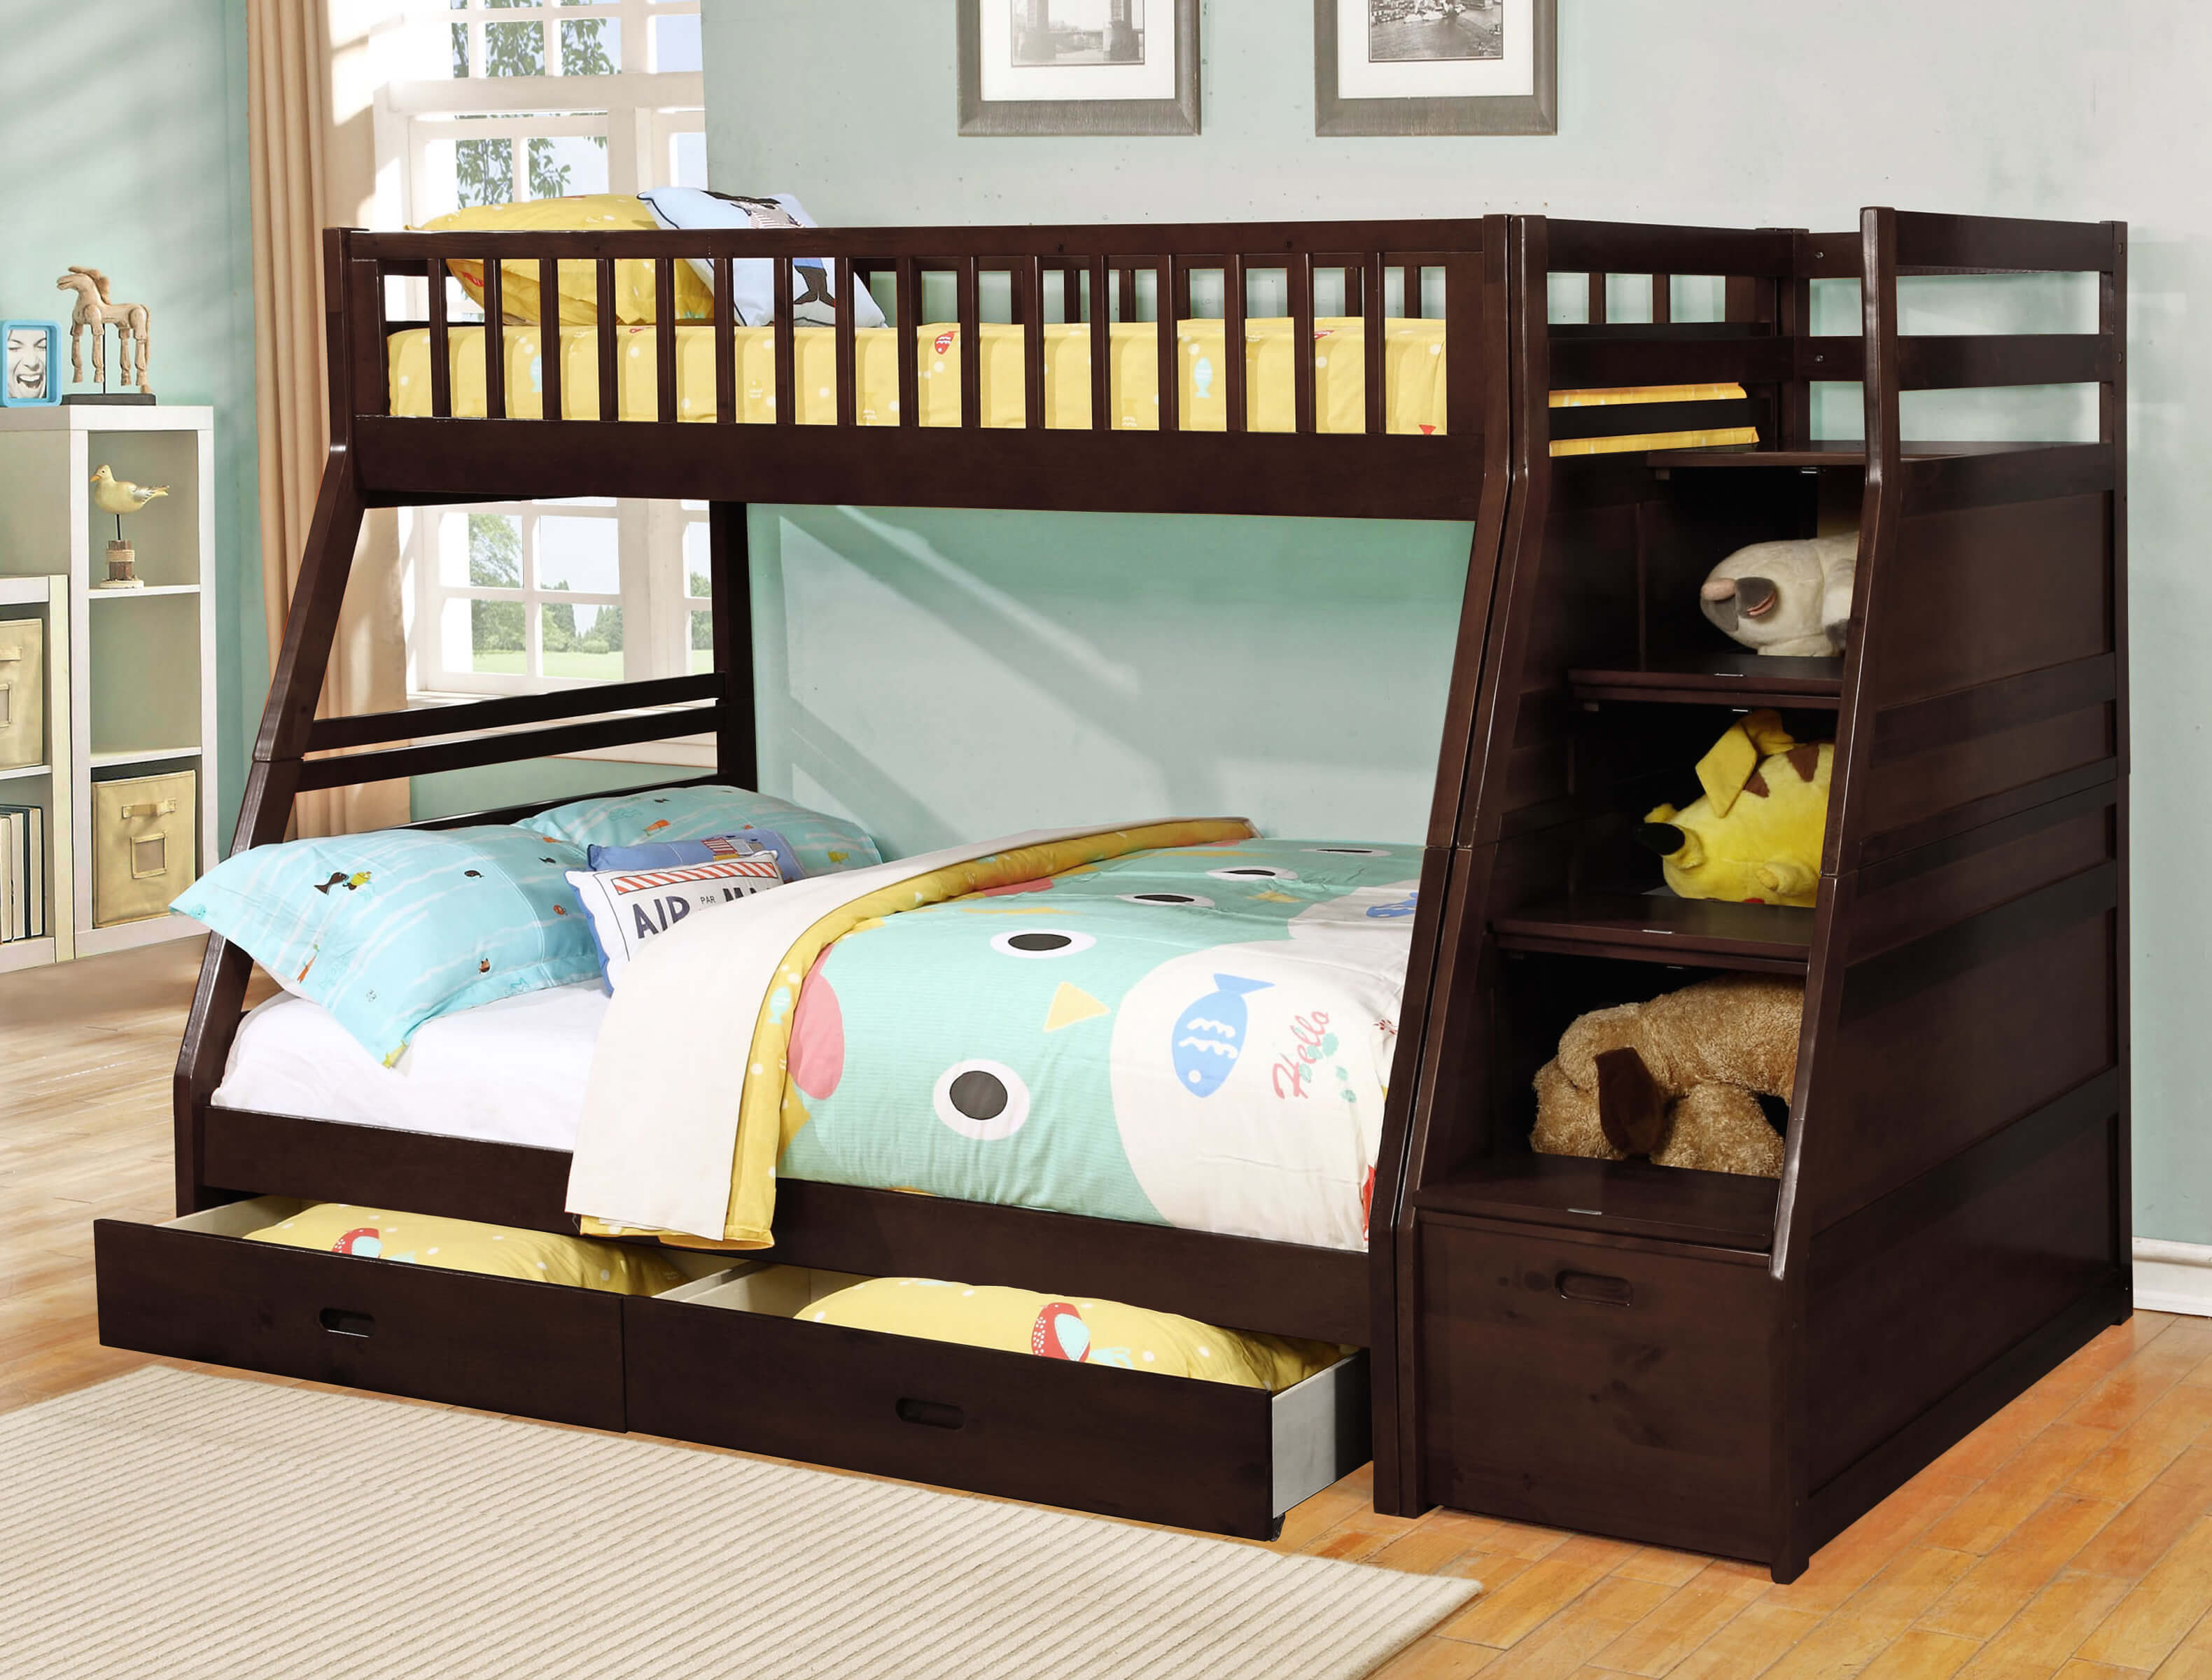 24 designs of bunk beds with steps